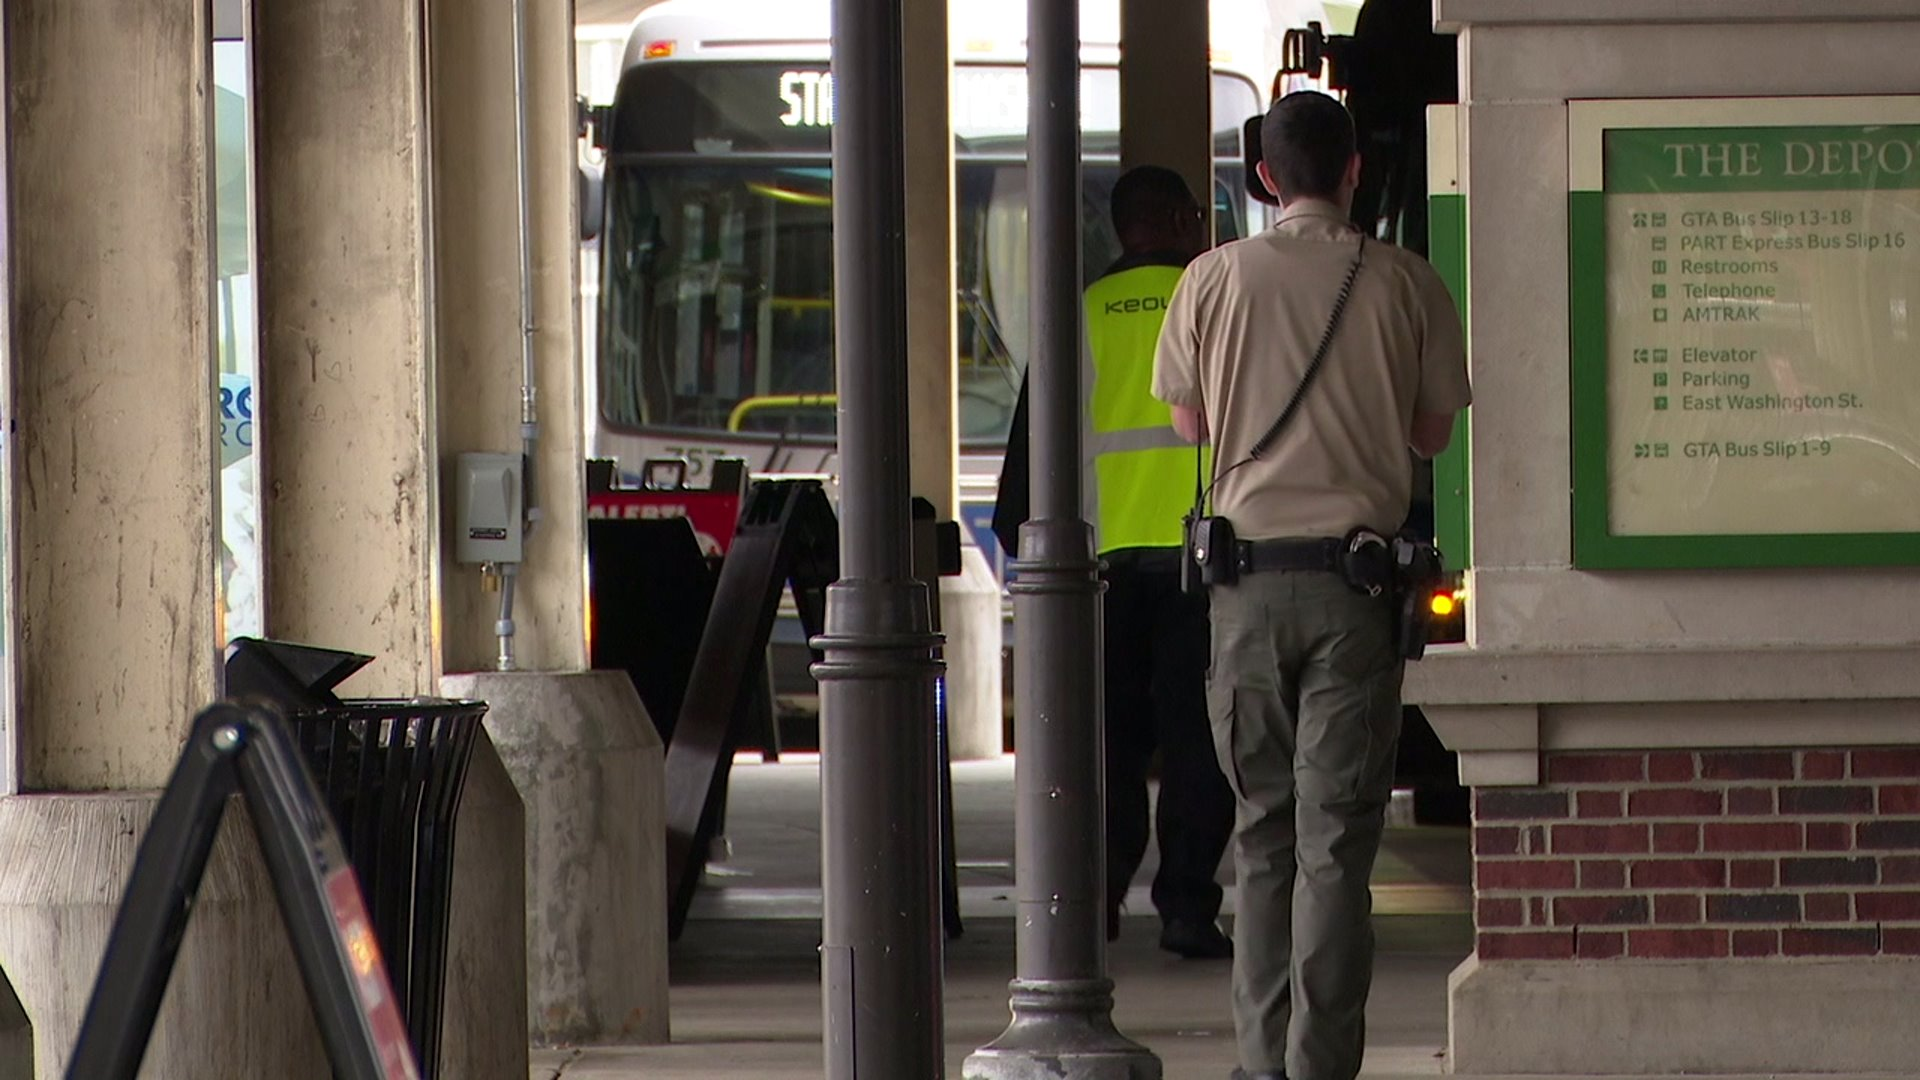 Greensboro City Council raises concerns about security at bus depot after complaints of mistreatment